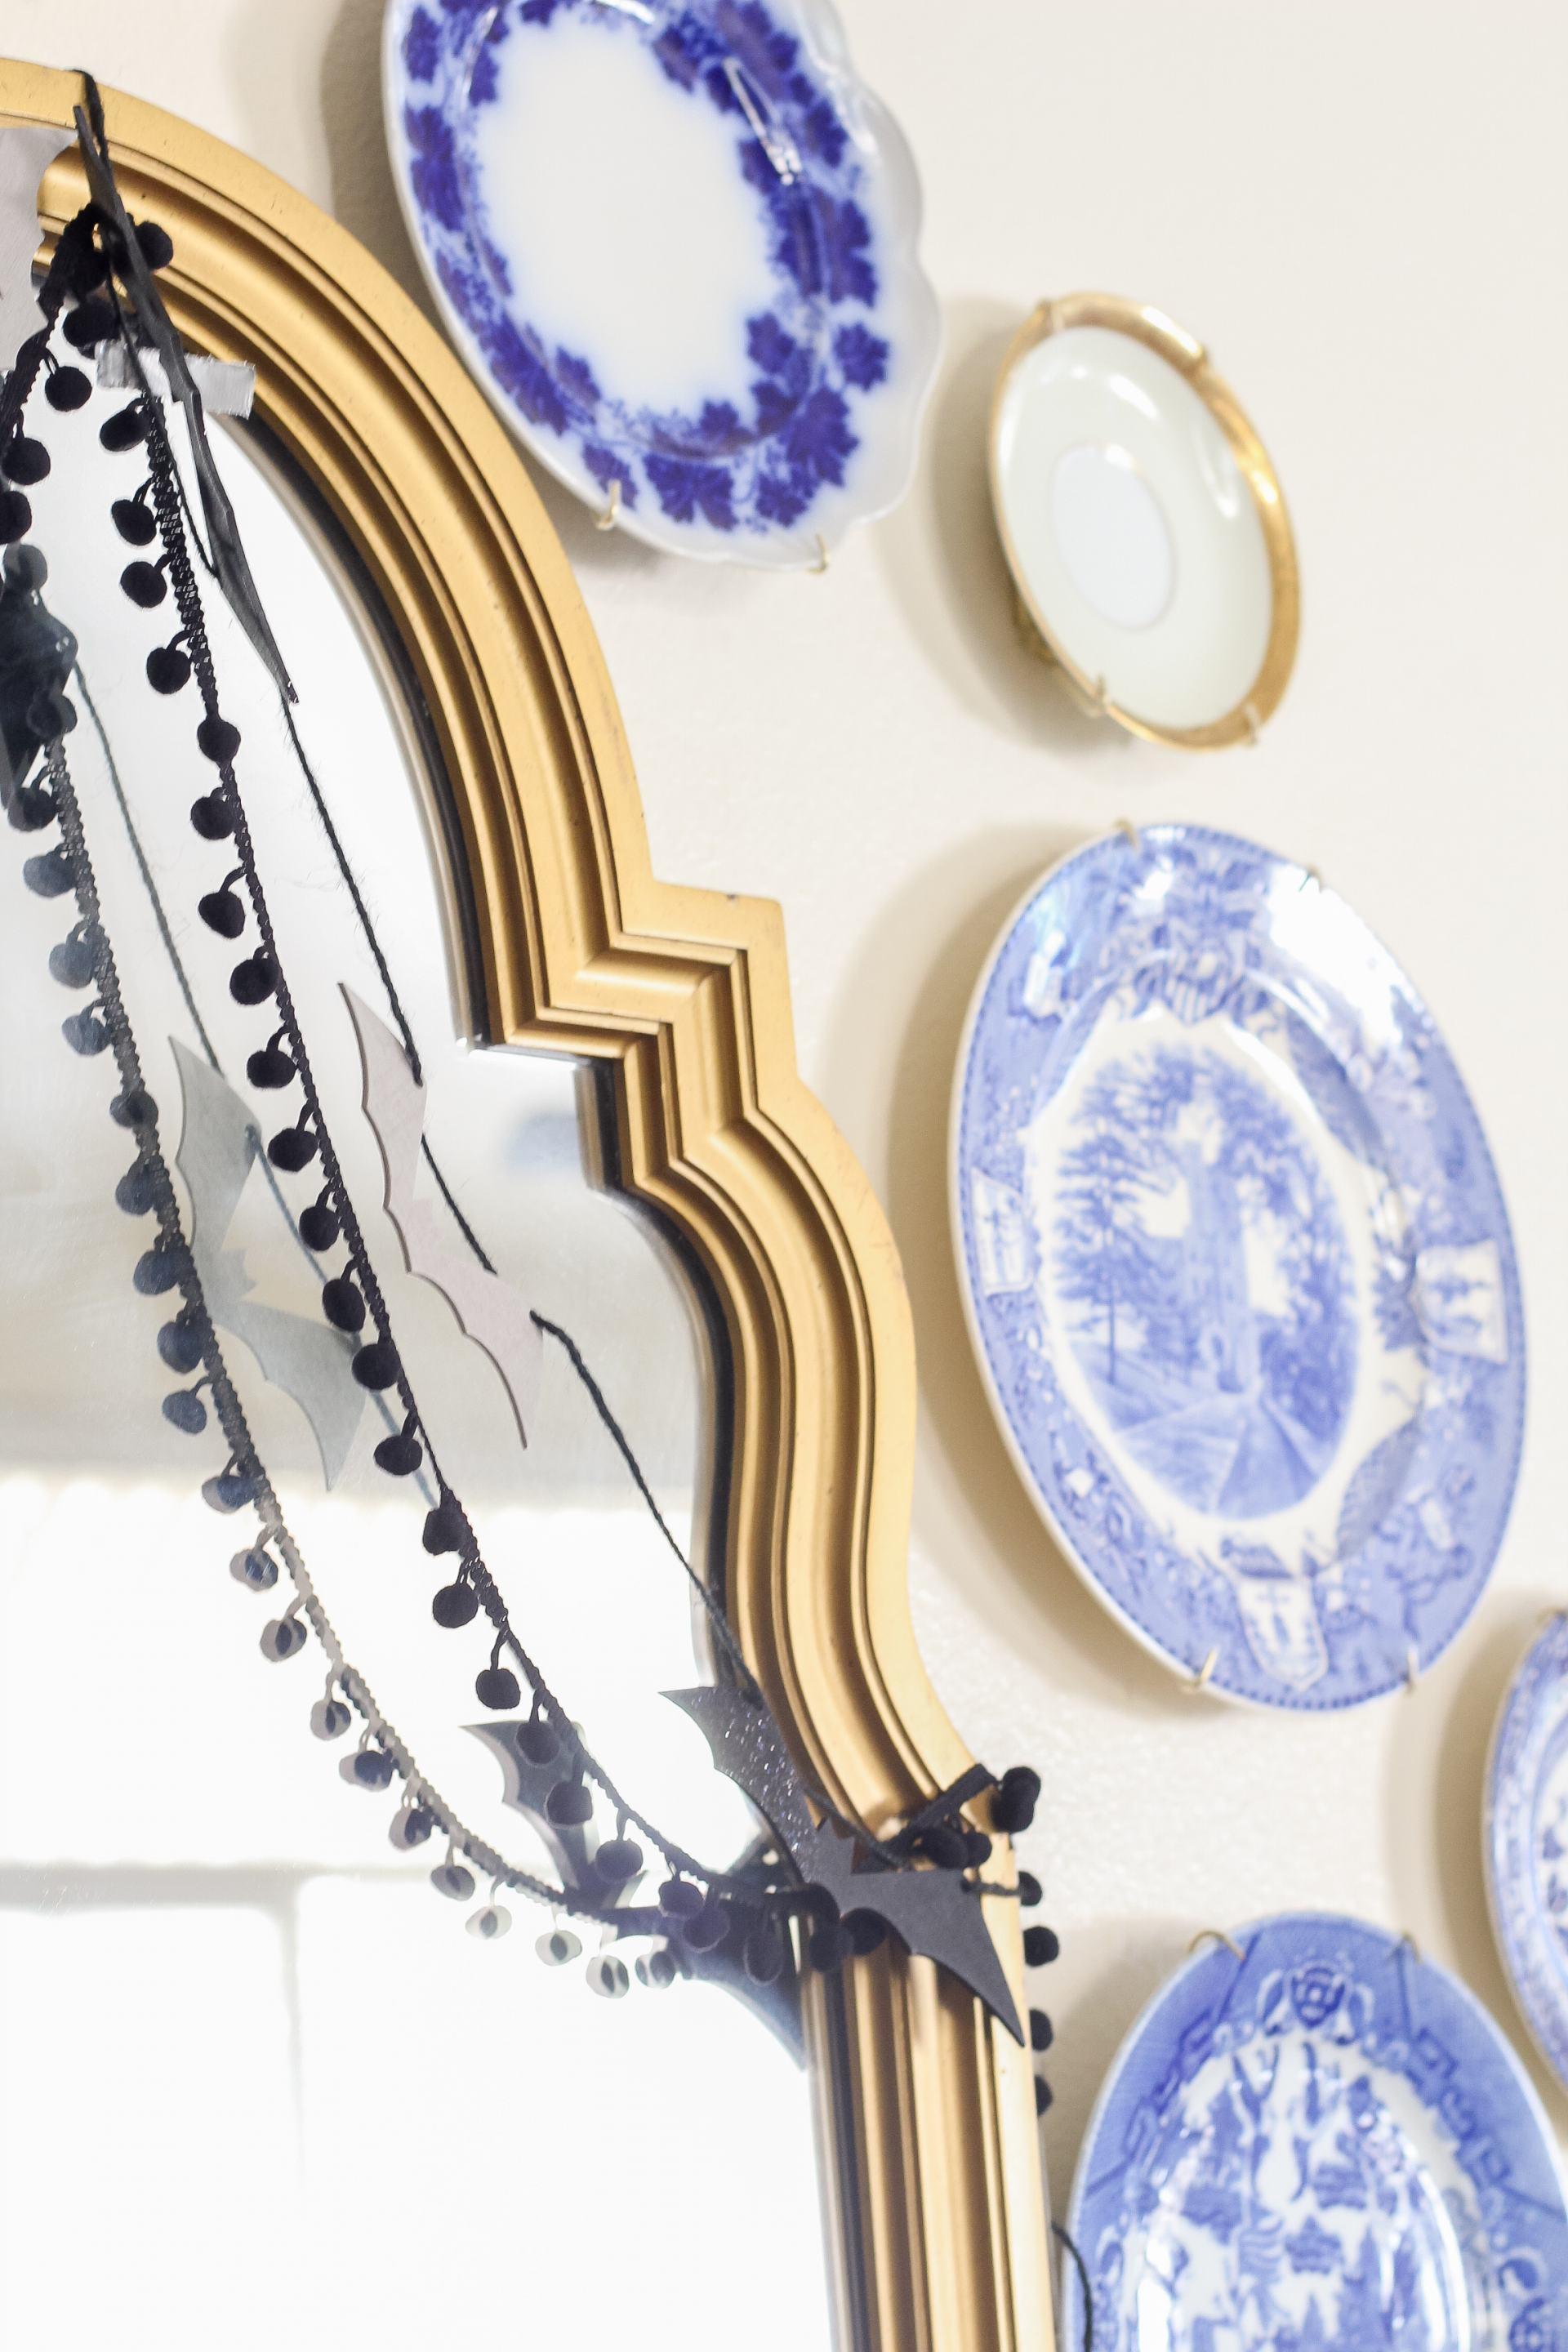 plates on wall - plate gallery wall - blue and white plate wall - blue and white fall decor - fall decorating ideas - classic fall style - bats on wall halloween - simple halloween decor - simple fall decor - blue and white pumpkins - kid craft halloween ideas - halloween garland - coastal style halloween - coastal style fall - painted pumpkins - paper mache pumpkins - affordable halloween decor - affordable fall decor - minimal fall decorating